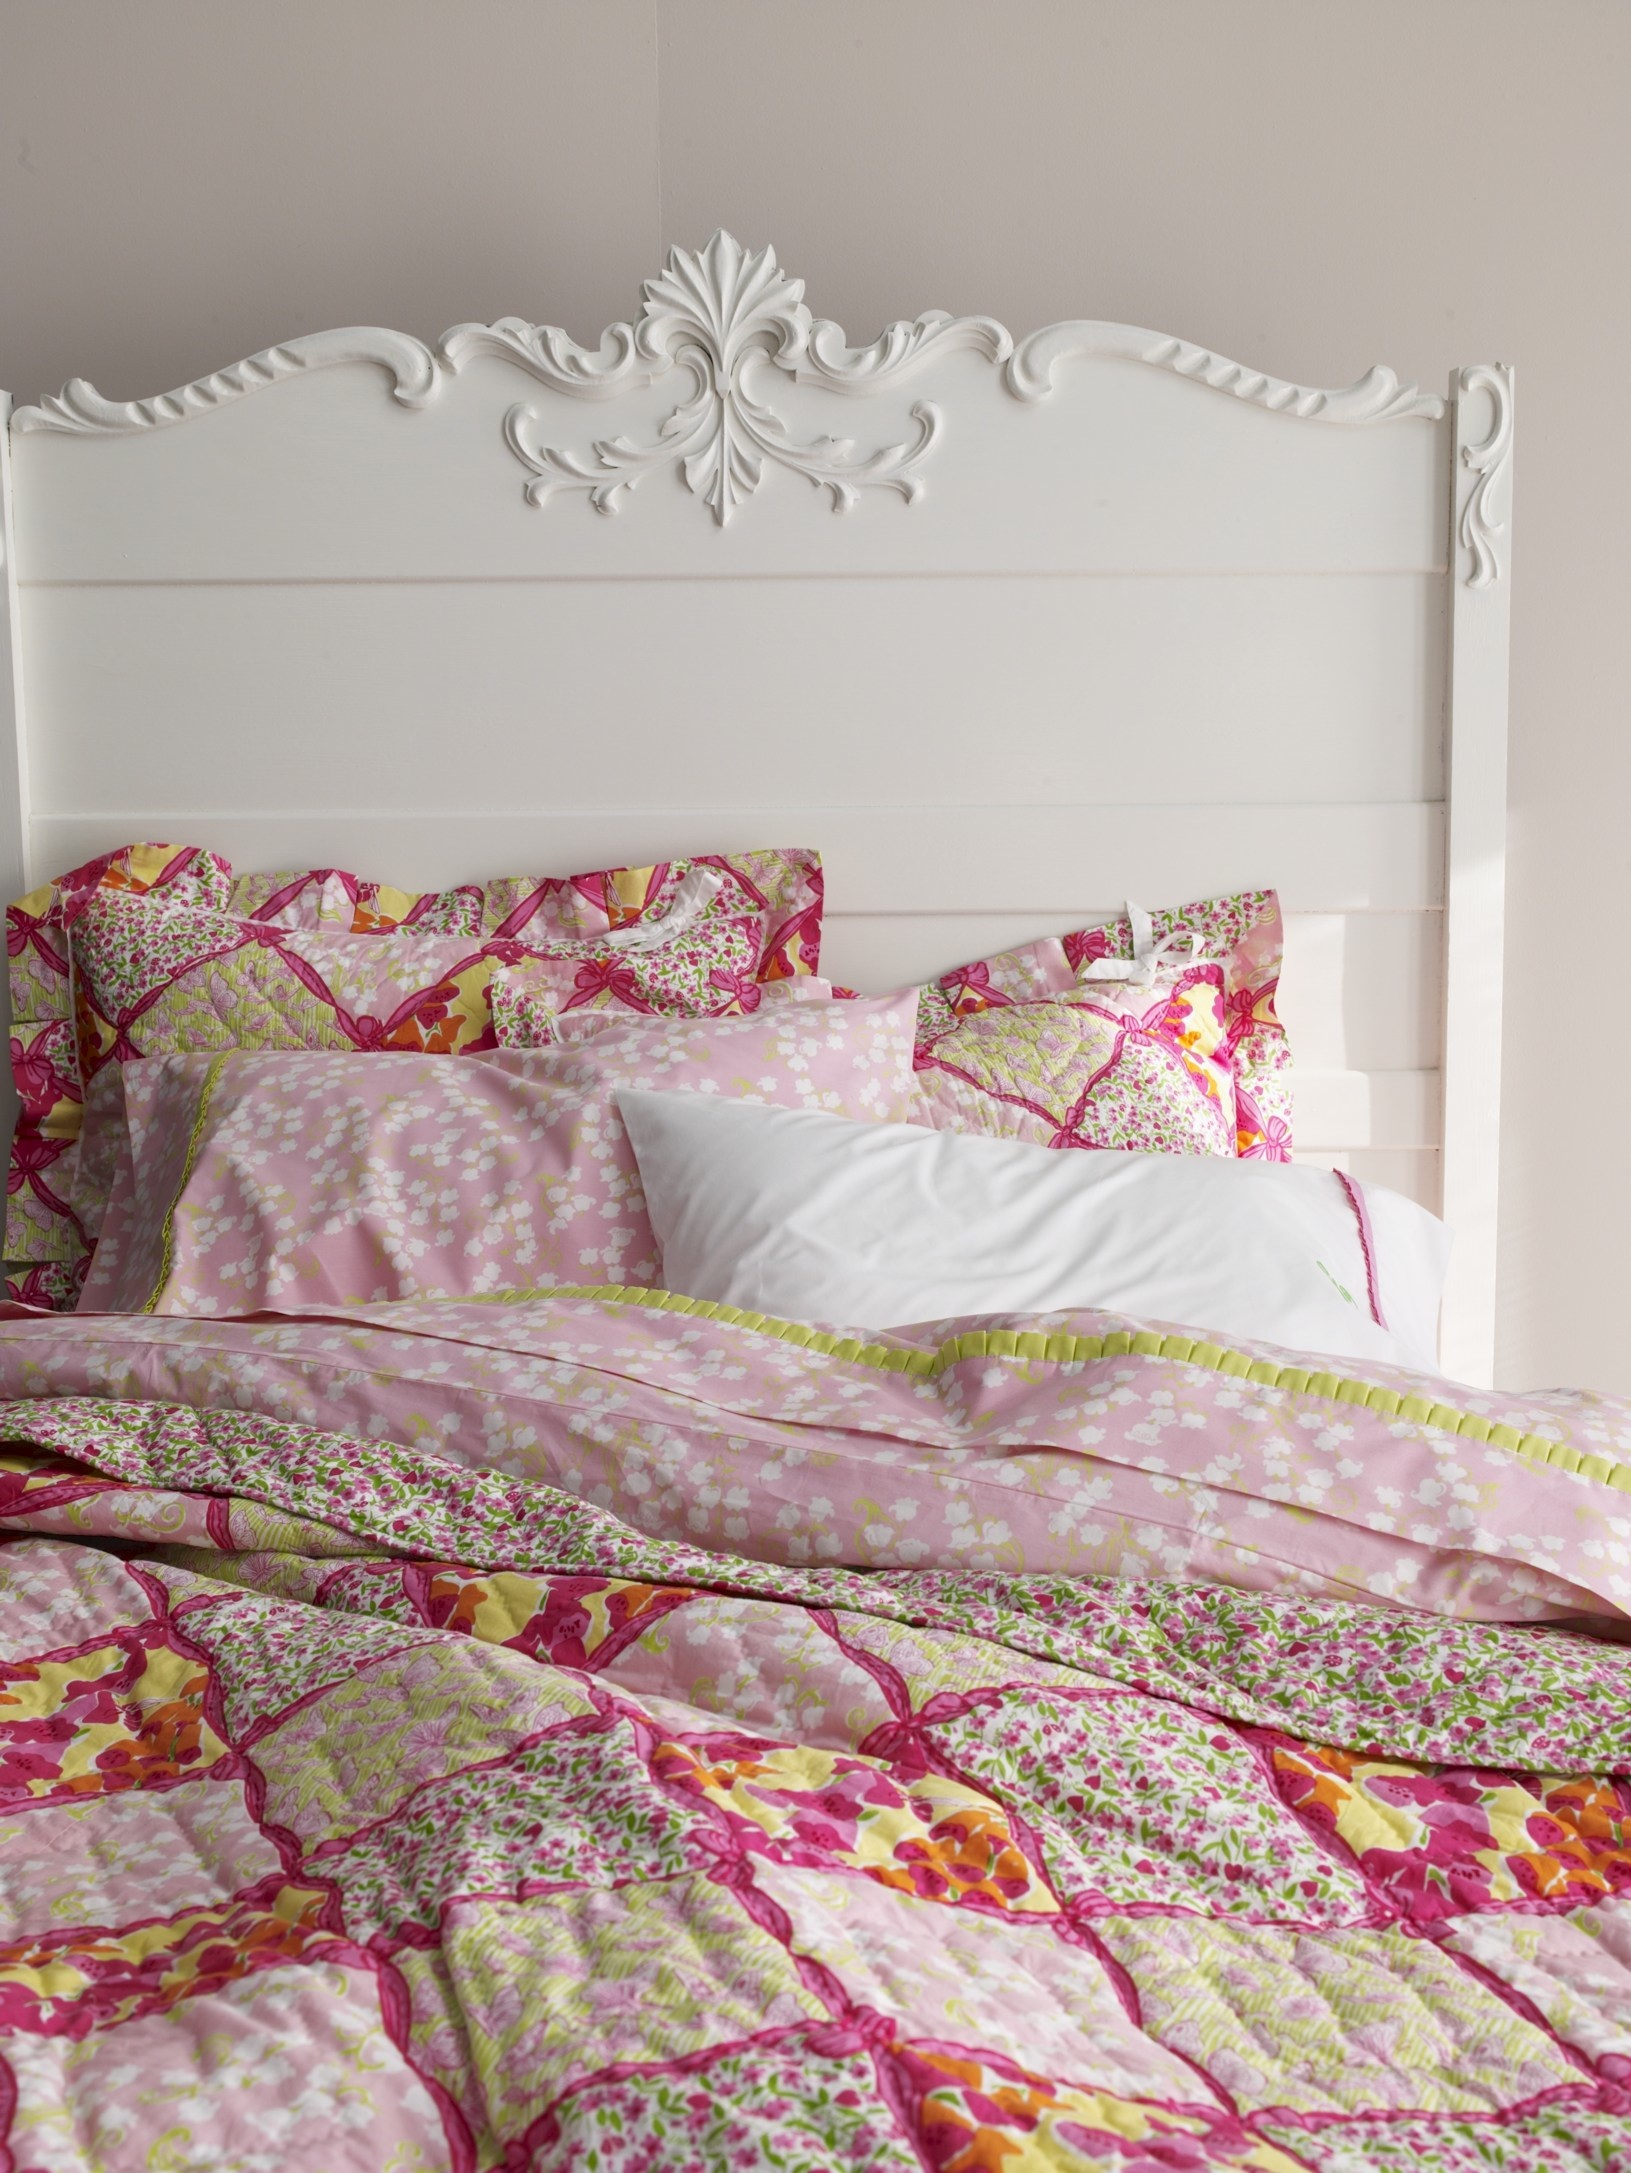 Bedrooms Bed Linens Textiles Bedding This Just In Lilly Pulitzer